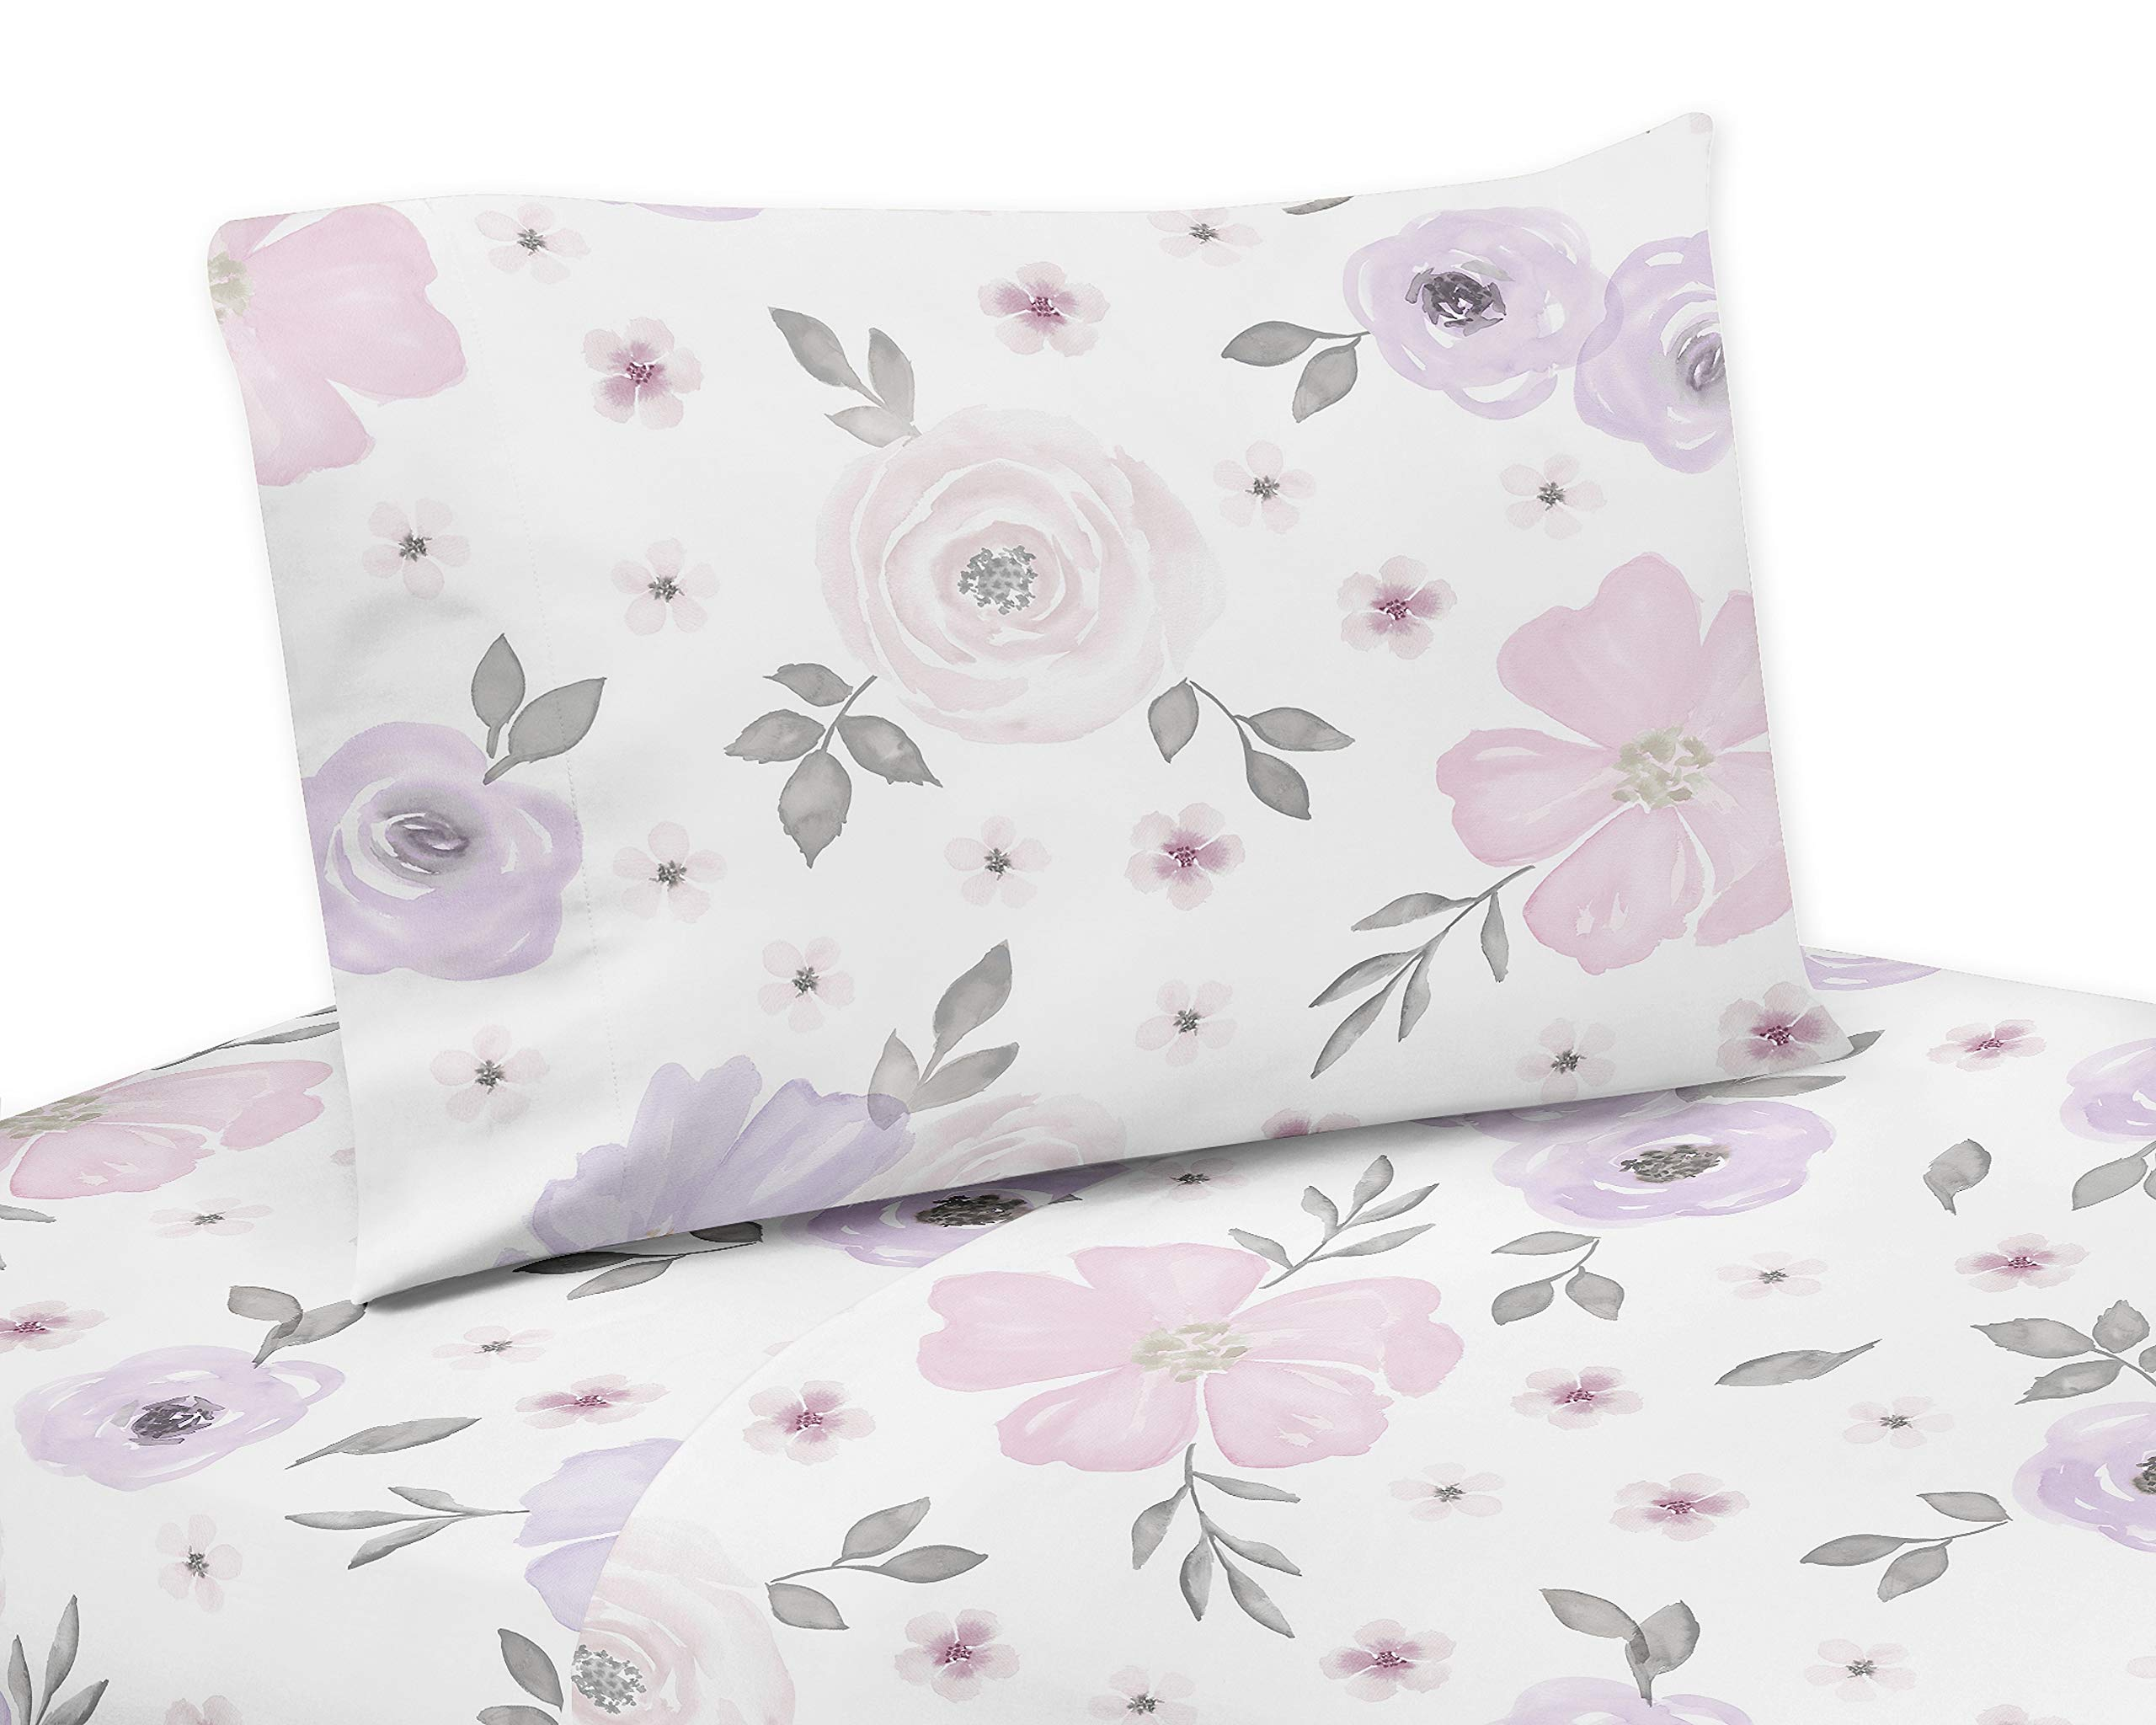 Sweet Jojo Designs Lavender Purple, Pink, Grey and White Twin Sheet Set for Watercolor Floral Collection - 3 piece set - Rose Flower by Sweet Jojo Designs